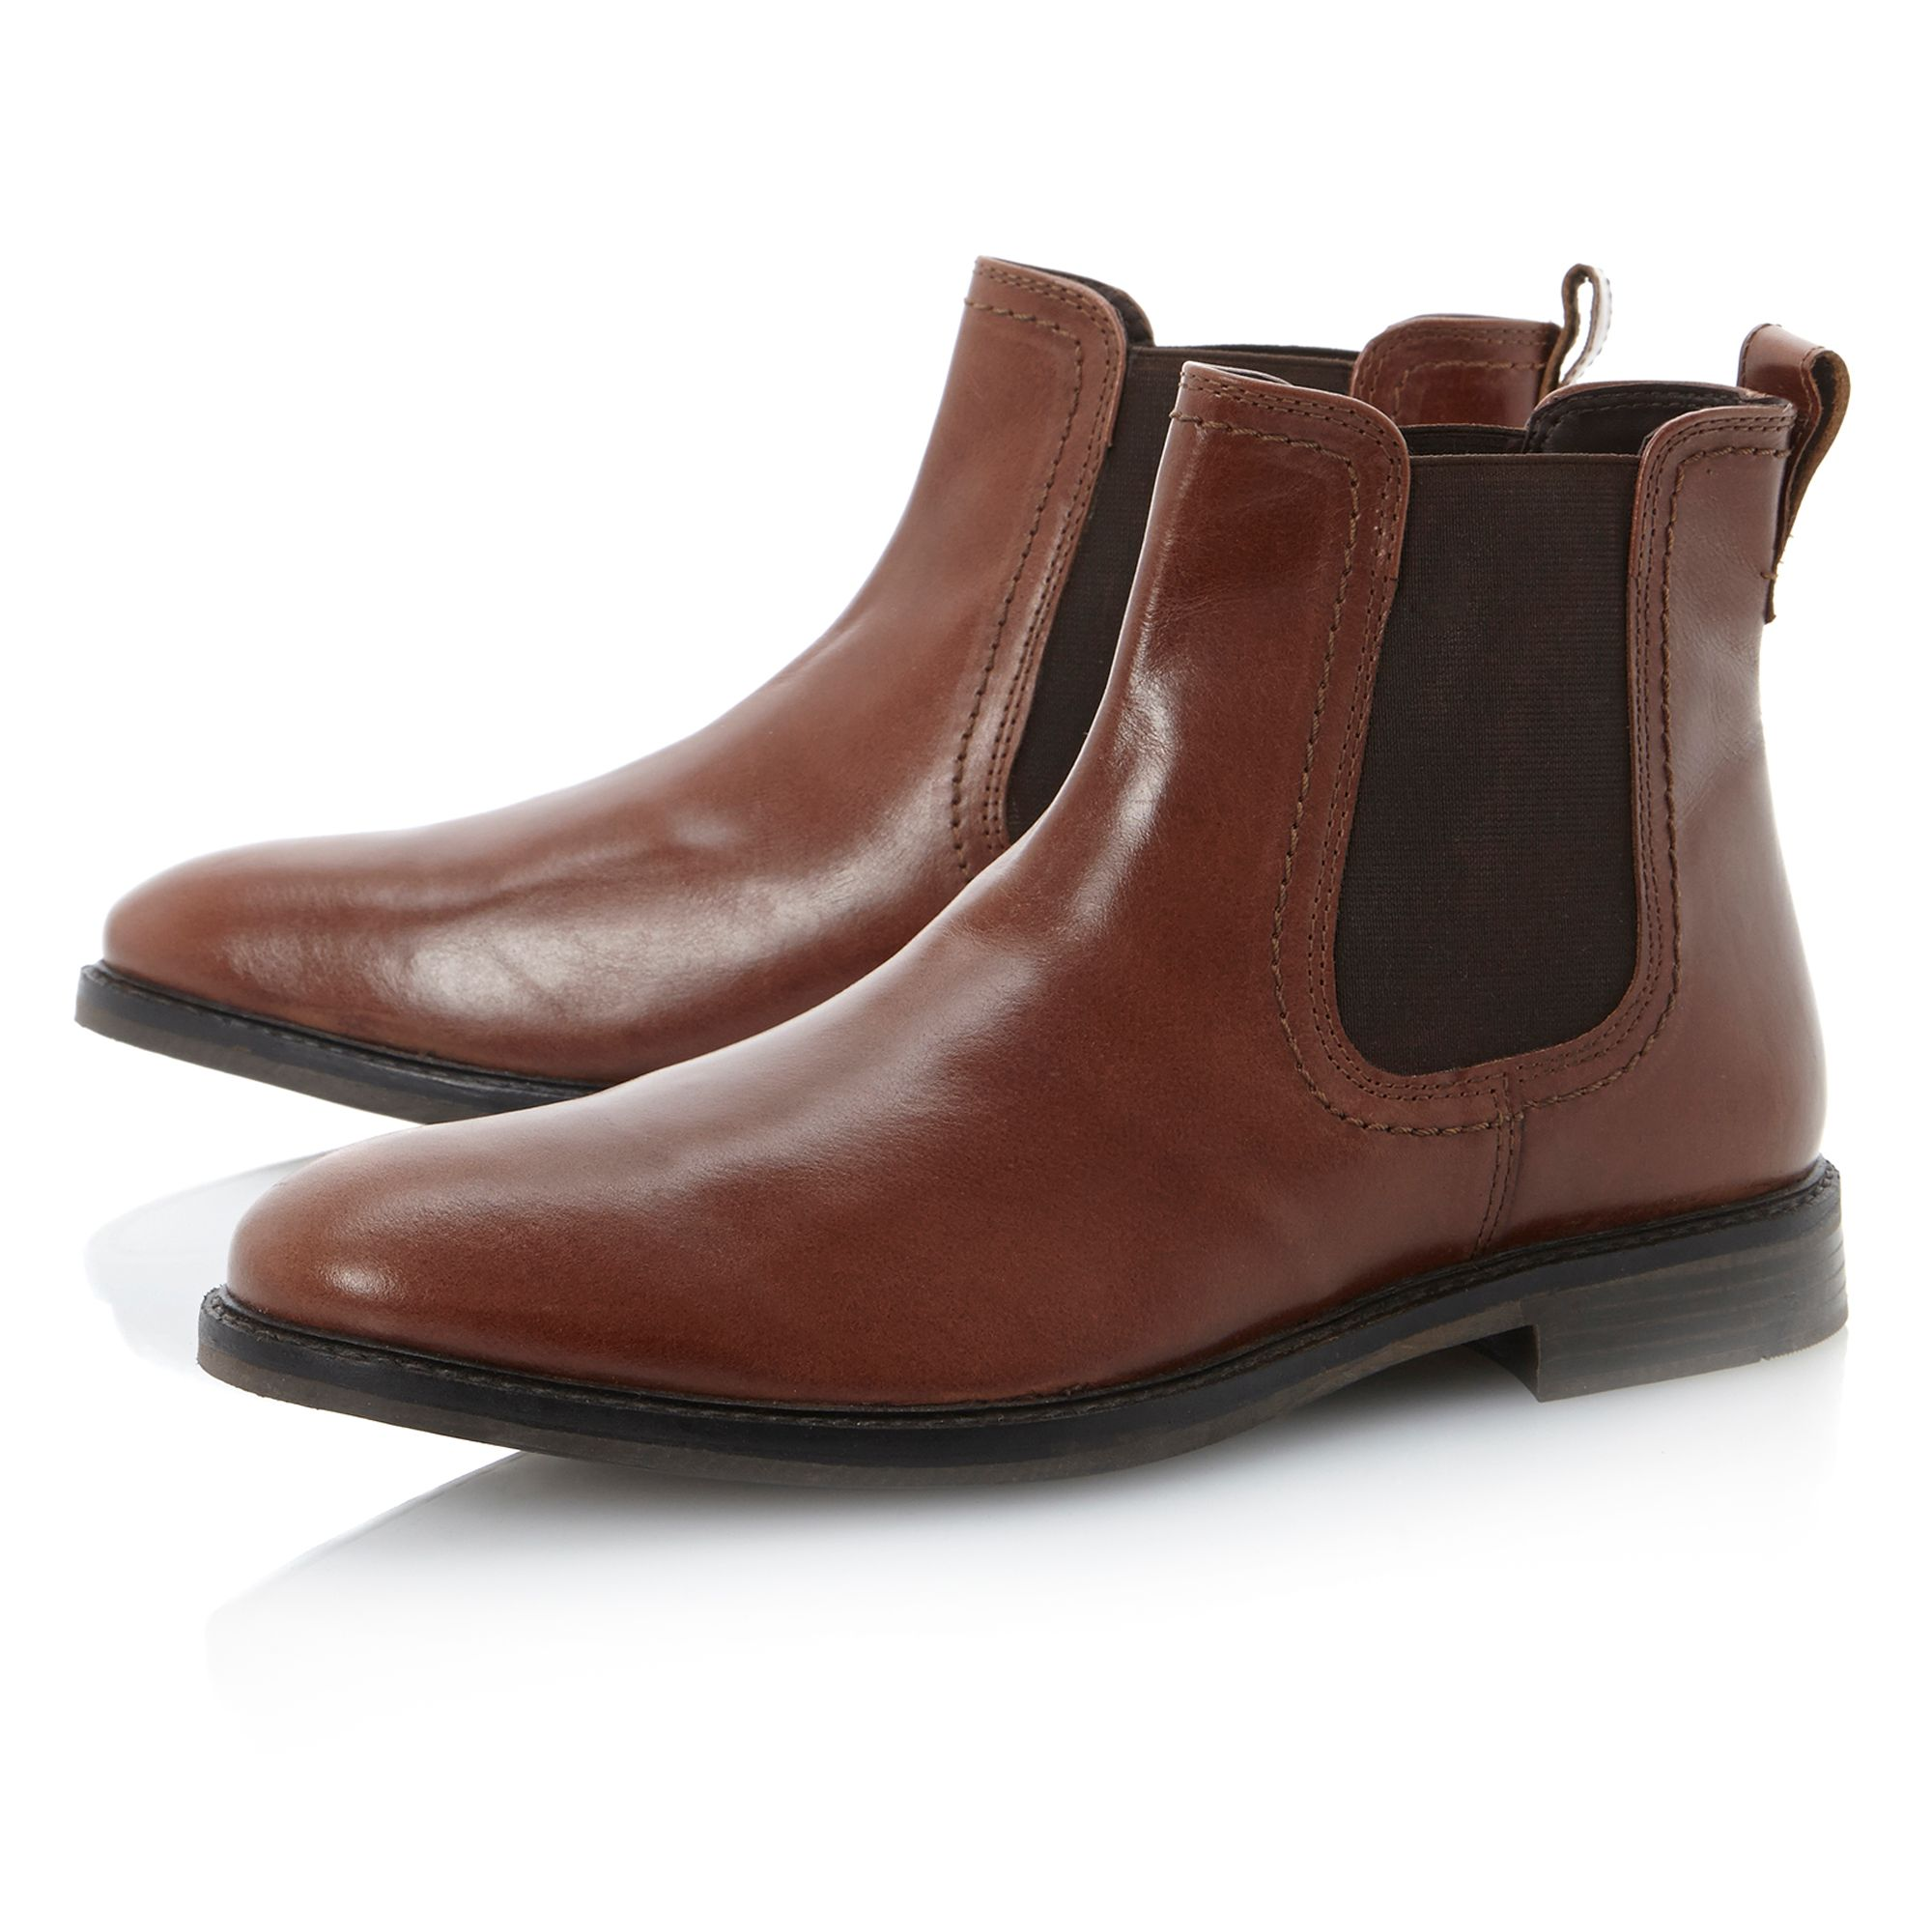 Carpenter chelsea boot